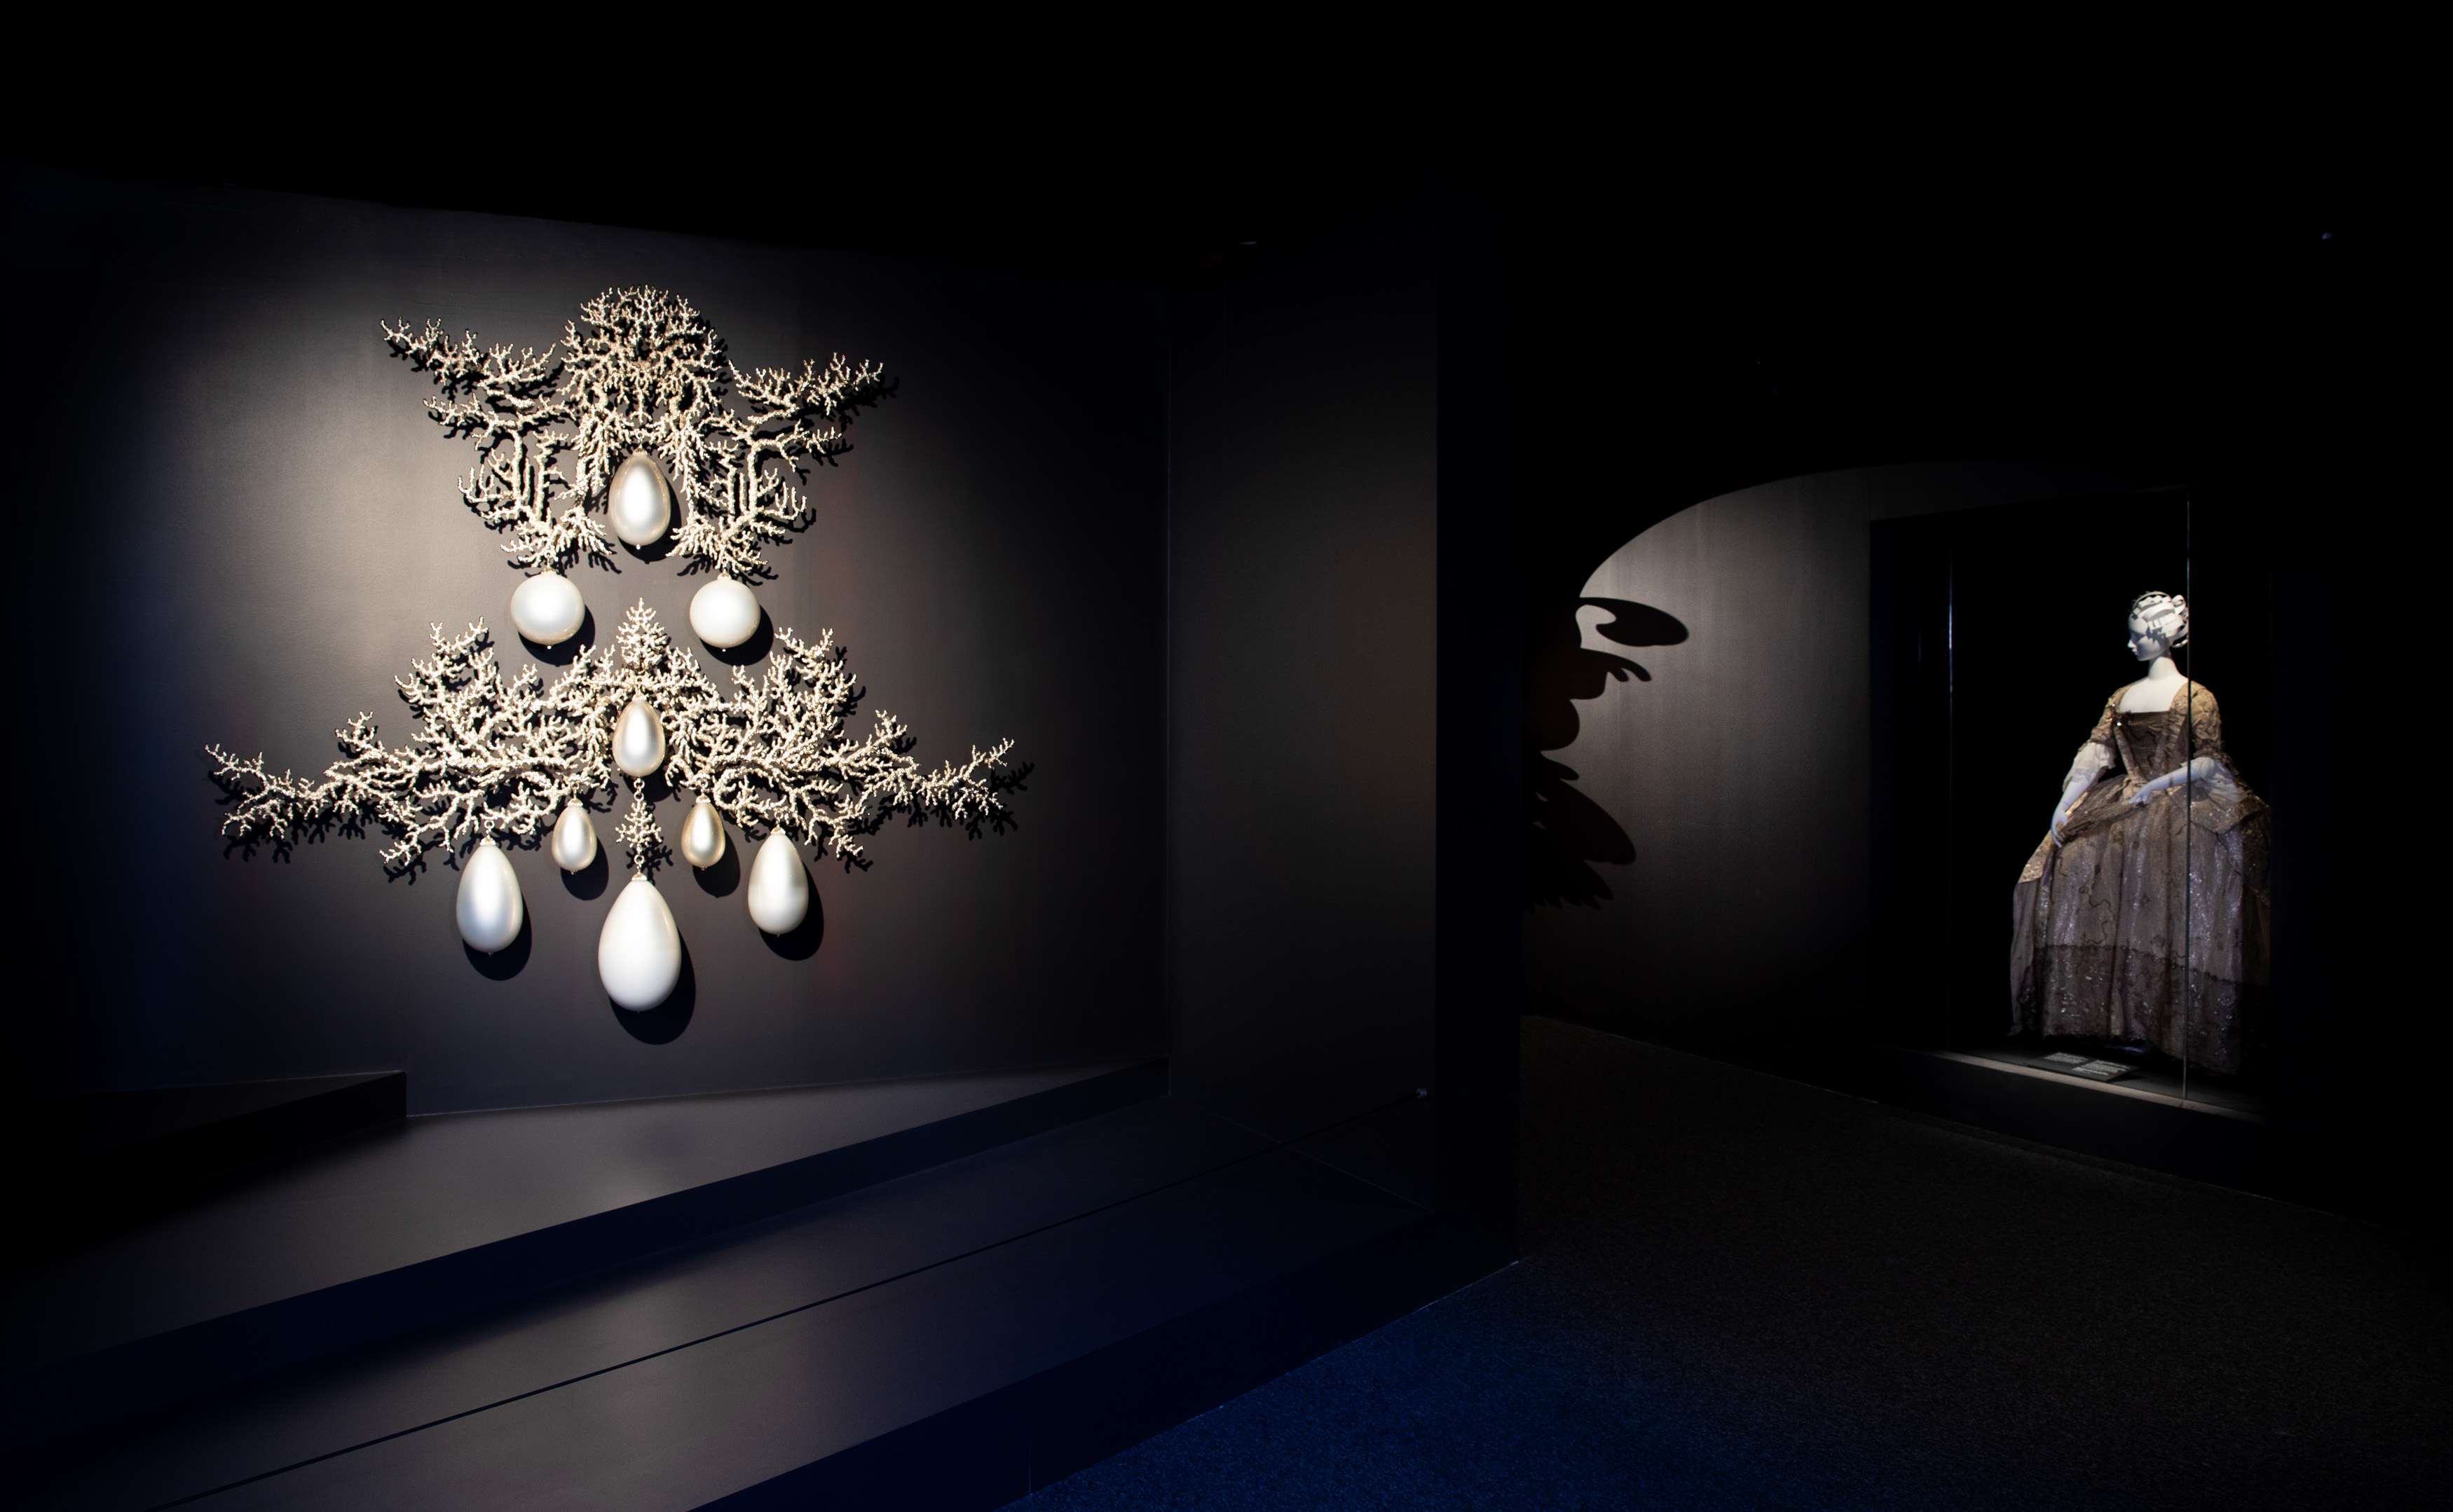 A symmetrical 2-piece wall artwork in the form of a huge pendant earring inspired by a baroque jewellery piece. It is made from a silvery cast-bronze structure which resembles flattened coral branches on which hang tear-shaped pearls made from hand-blown white glass with a mirror finish.